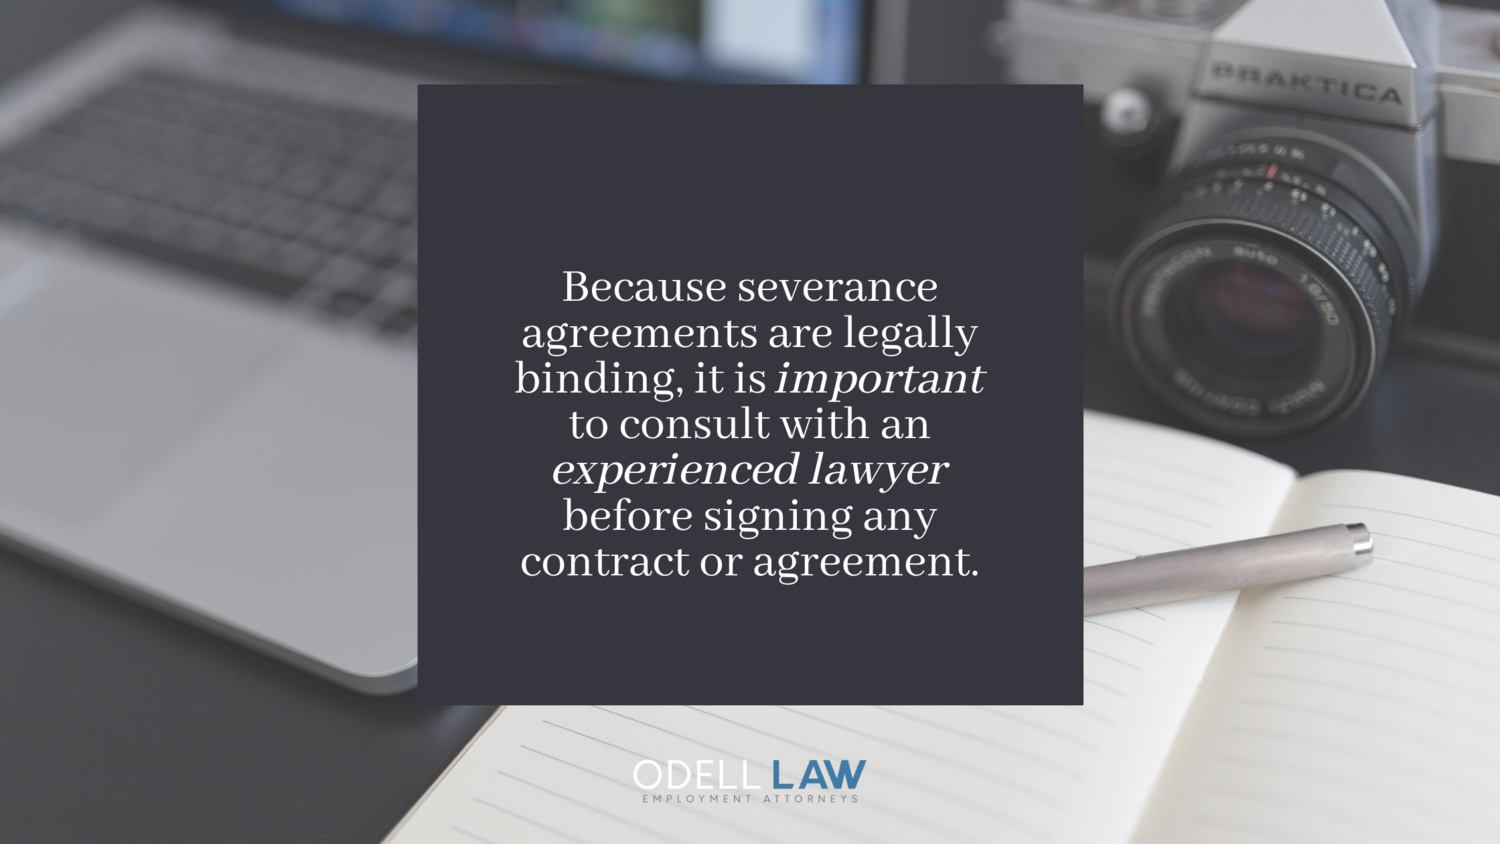 Because severance agreements are legally binding, it is important to consult with an experienced lawyer before signing any contract or agreement..png